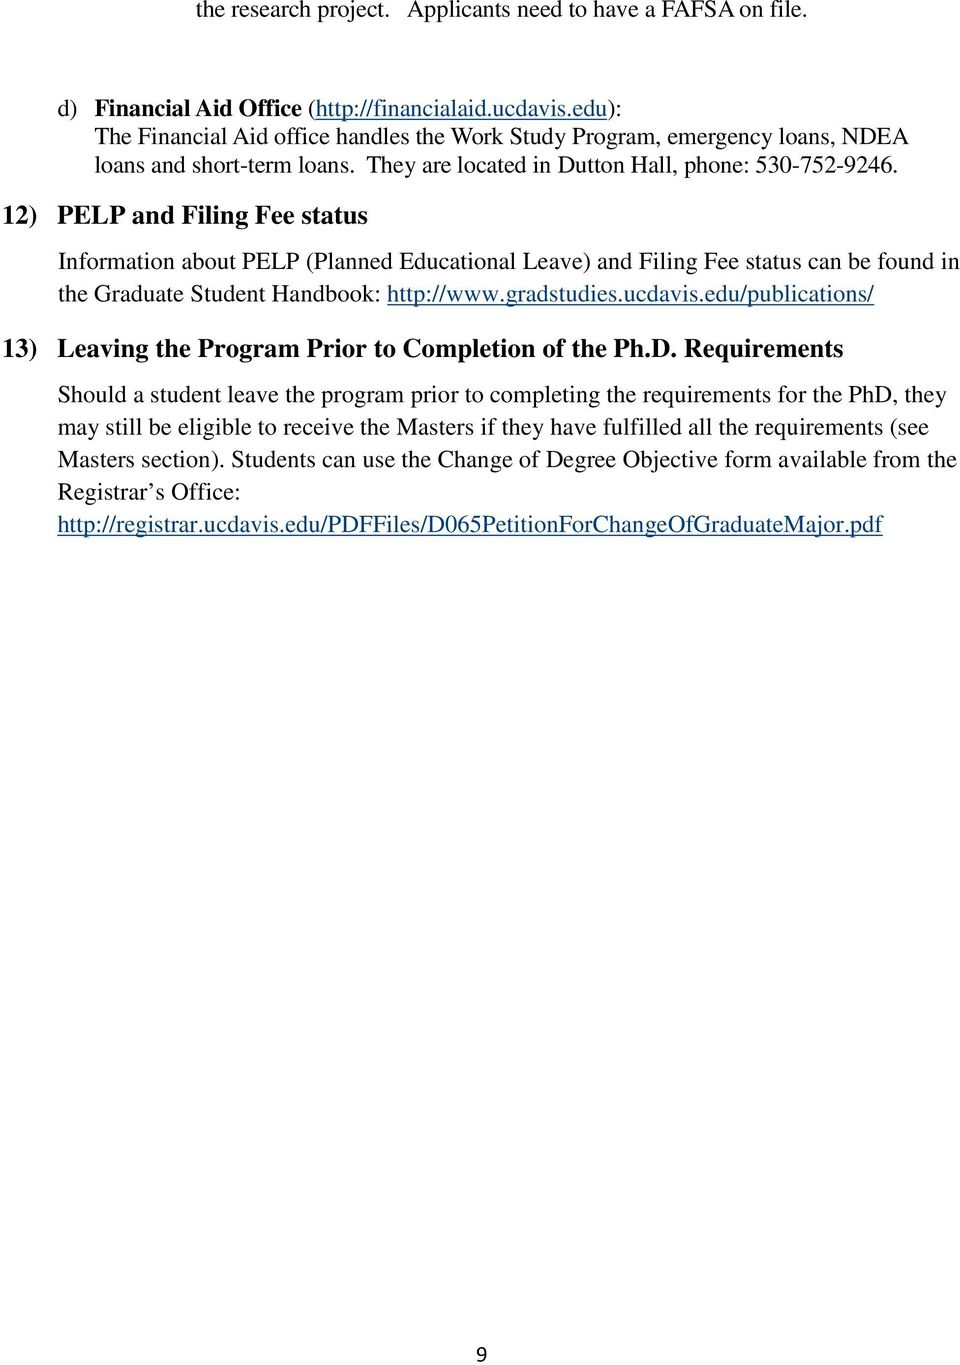 12) PELP and Filing Fee status Information about PELP (Planned Educational Leave) and Filing Fee status can be found in the Graduate Student Handbook: http://www.gradstudies.ucdavis.